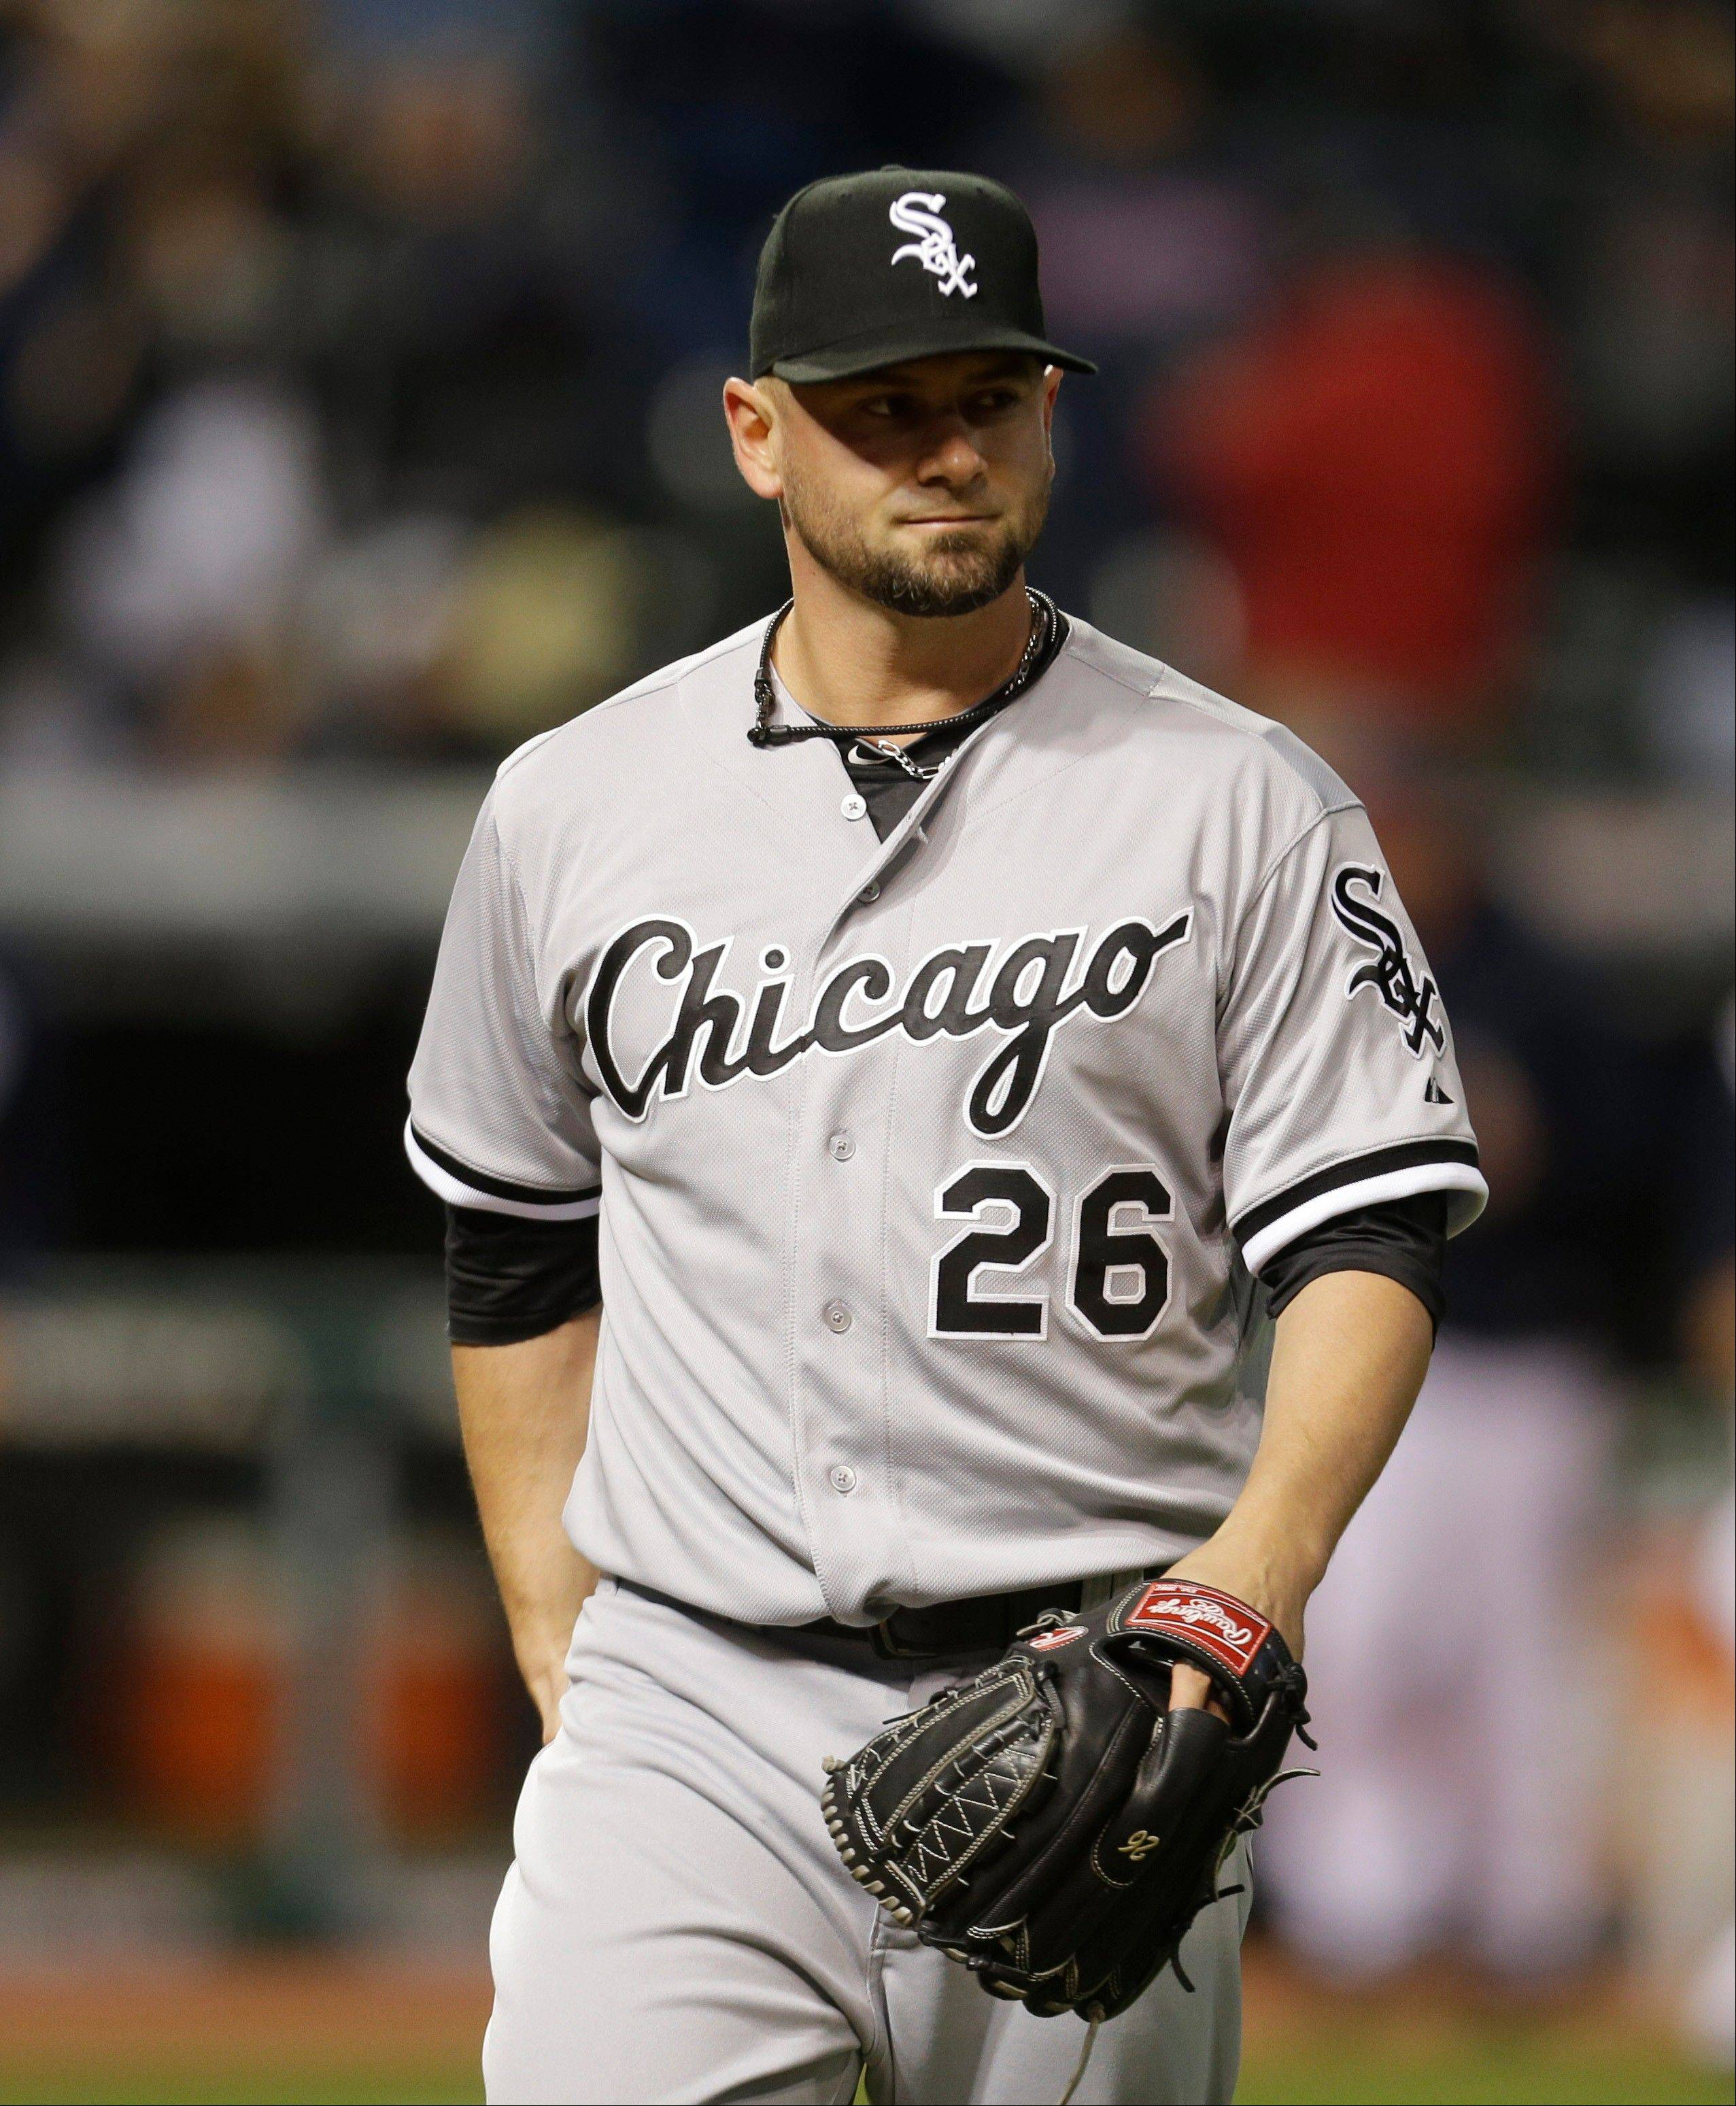 White Sox pithcer Jesse Crain was named Saturday to the 2013 All-Star Game.